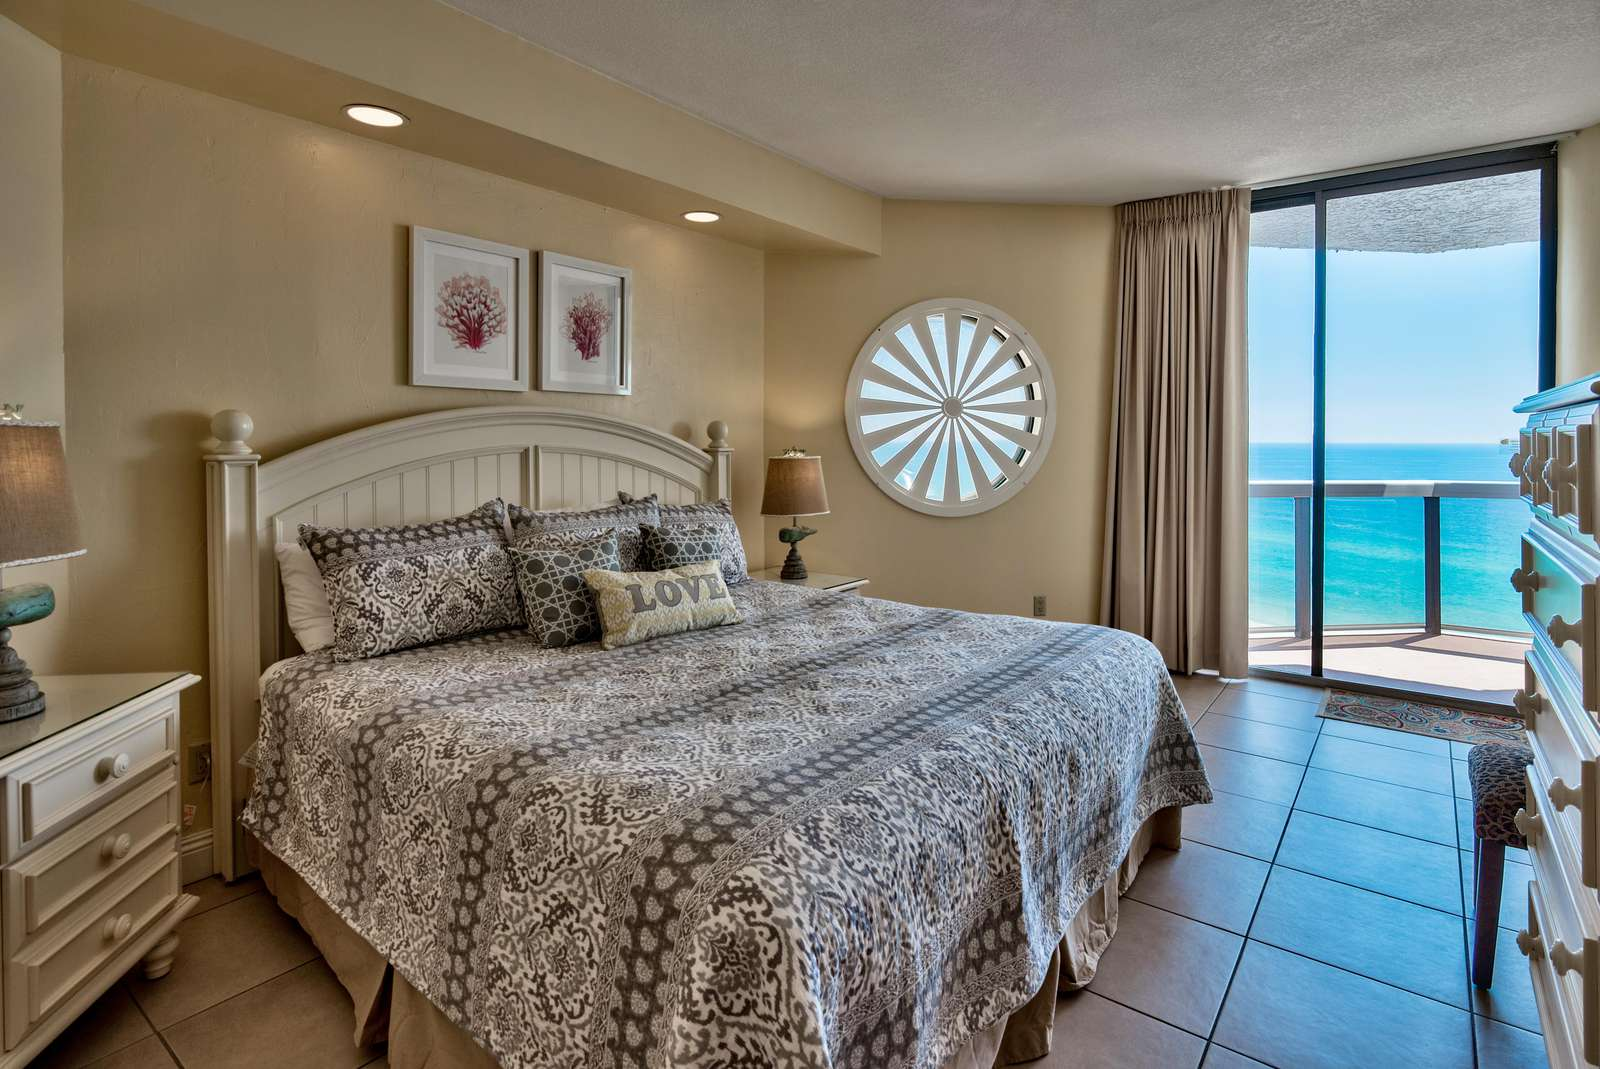 Master BR - King Bed - Beautiful Views of the Gulf